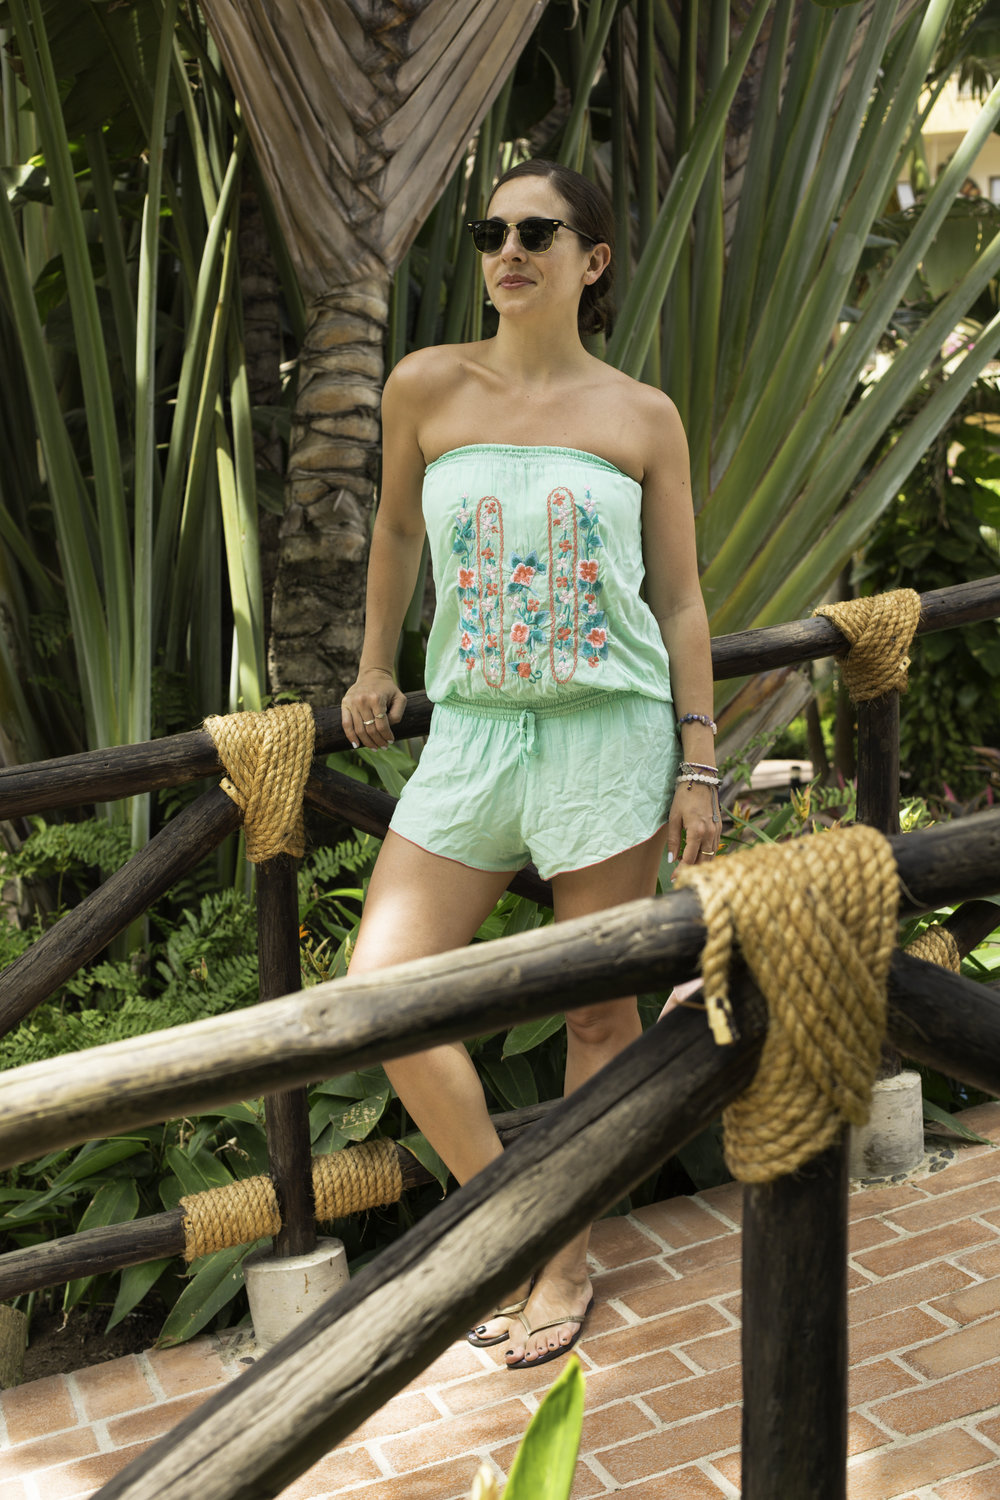 d401fe3891 Wearing this embroidered romper, from the cutest little beach-chic boutique  in Honolulu called